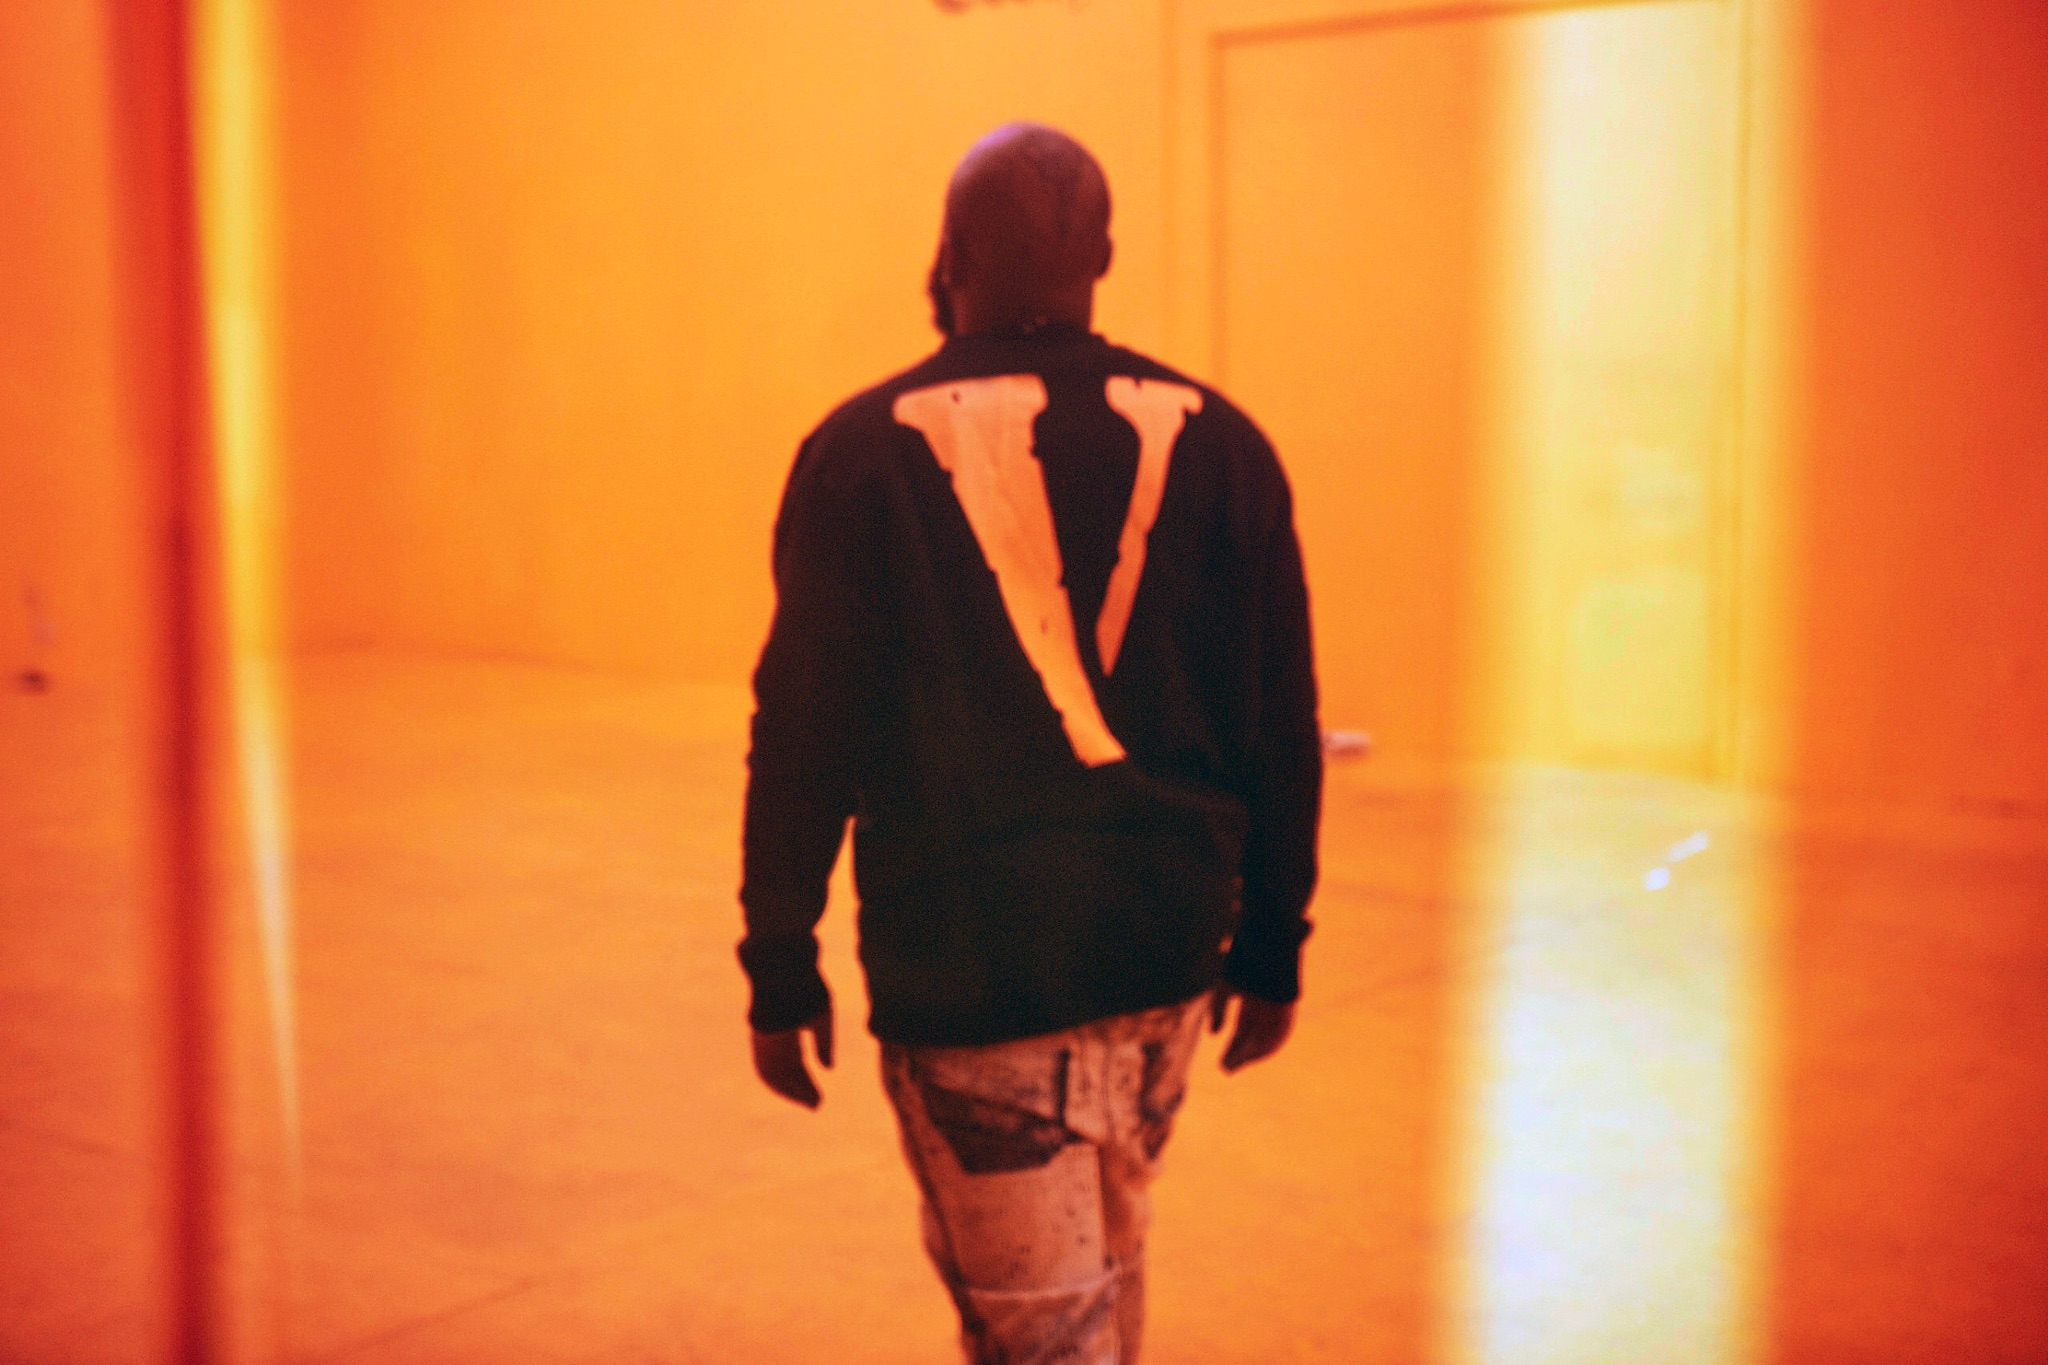 VLONE And UNKNWN Are Throwing A Huge Party In Miami with A$AP Bari This Weekend